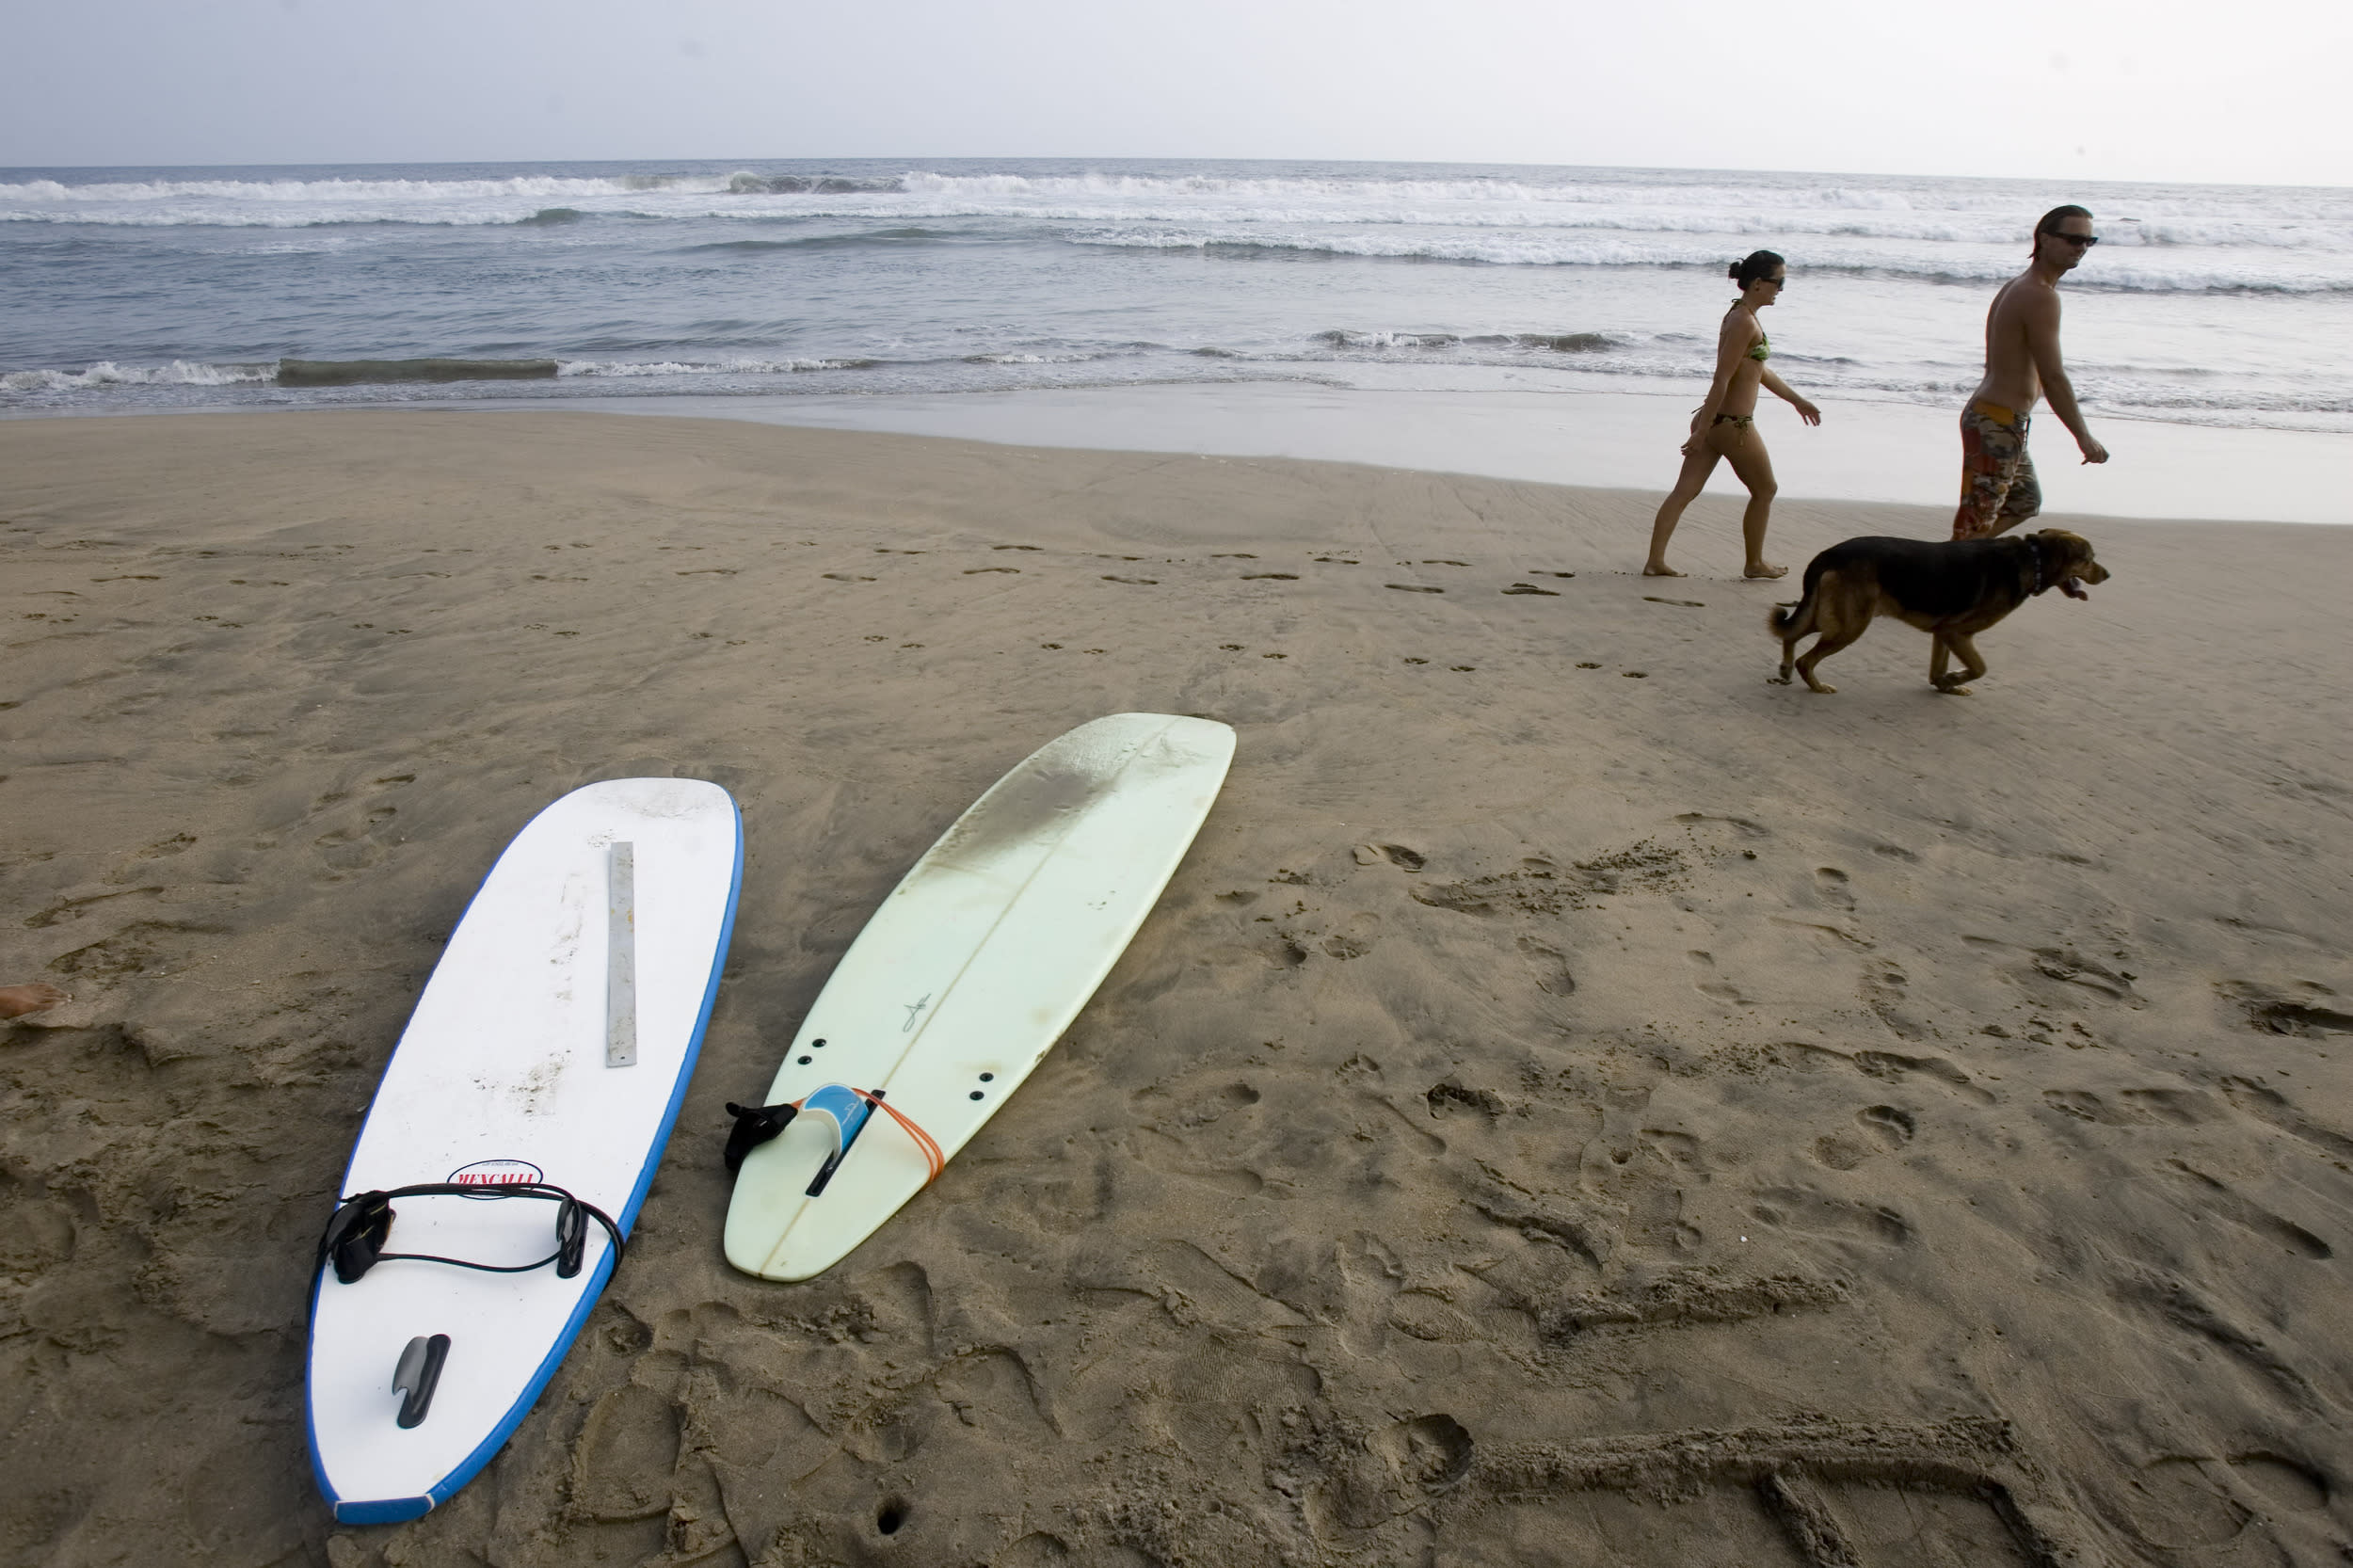 <p>Mexico has had 42 shark attacks (22 fatalities) since 1880.</p>  <p>Picture: People walk along Troncones beach in Mexico's Pacific Coast village of Troncones in 2008, after sharks attacked three surfers in the area in less than a month, two fatally.</p>